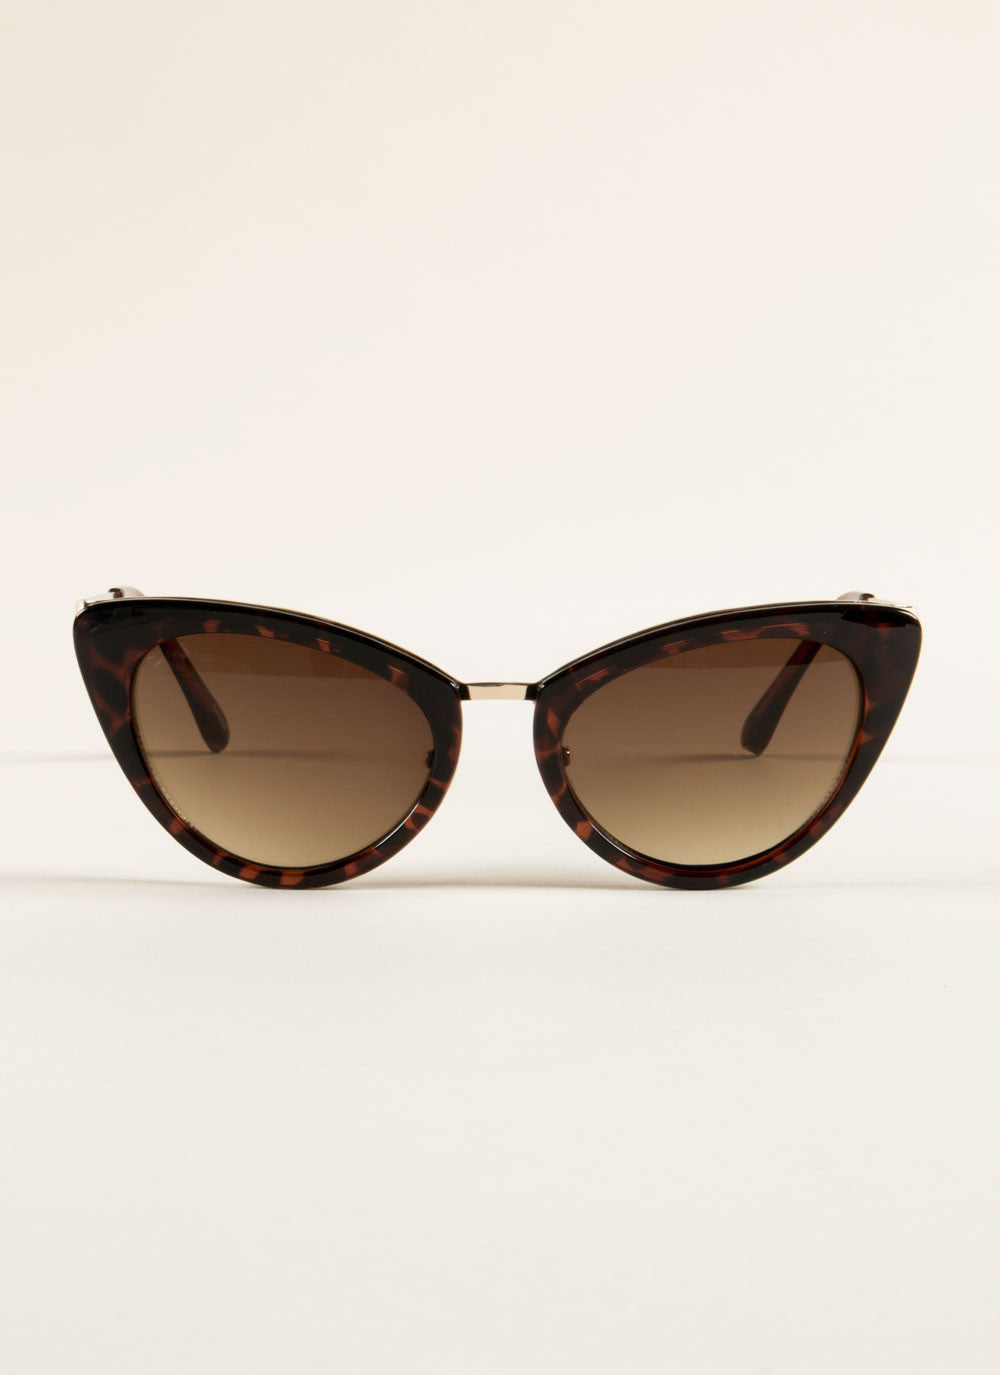 Hollywood Cat Eye Sunglasses , Accessories - Fashion Trend LA, Fashion Trend LA  - 2